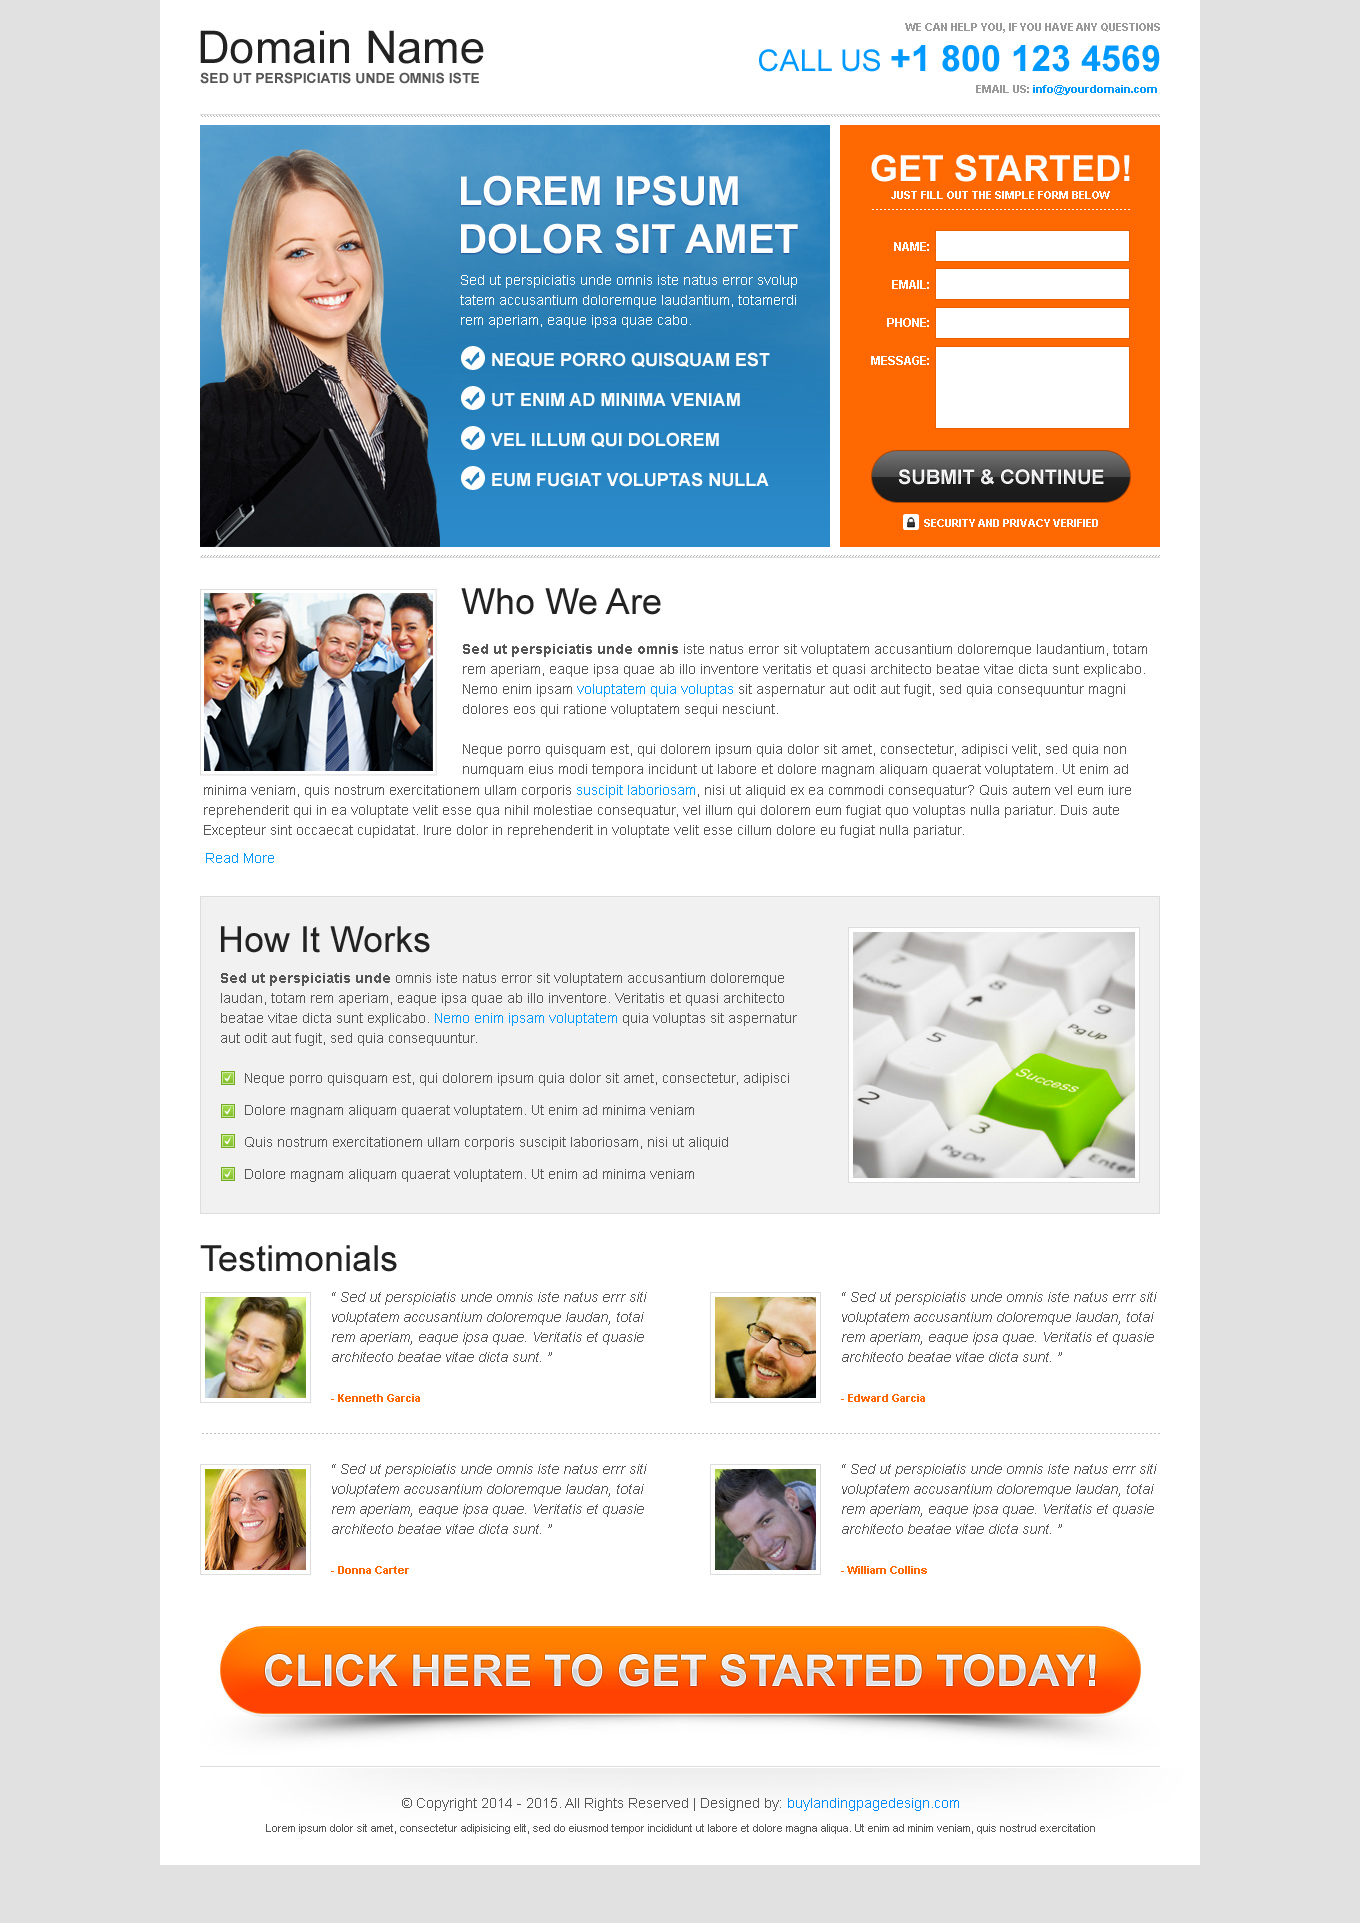 Free landing page design templates to capture leads for your online business services